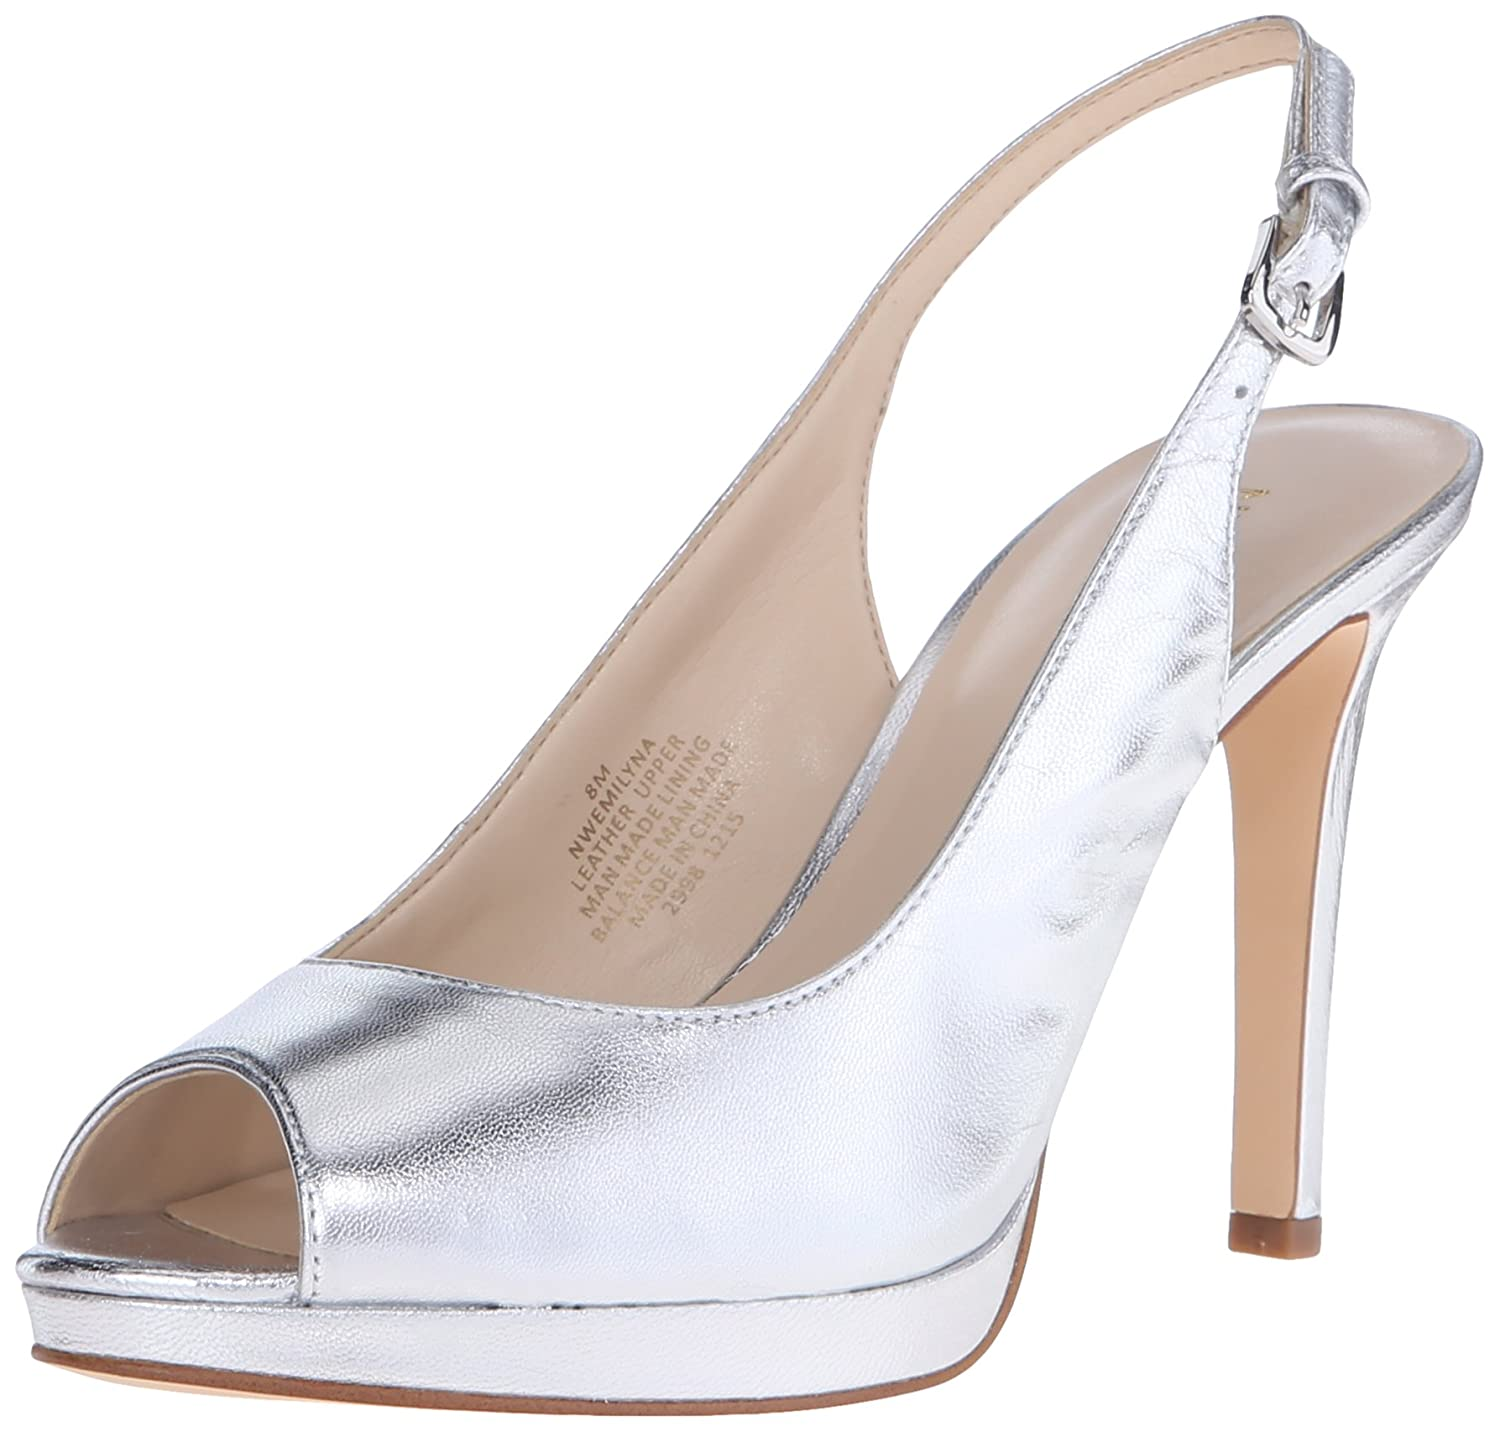 Nine West Women's Emilyna Metallic Dress Pump